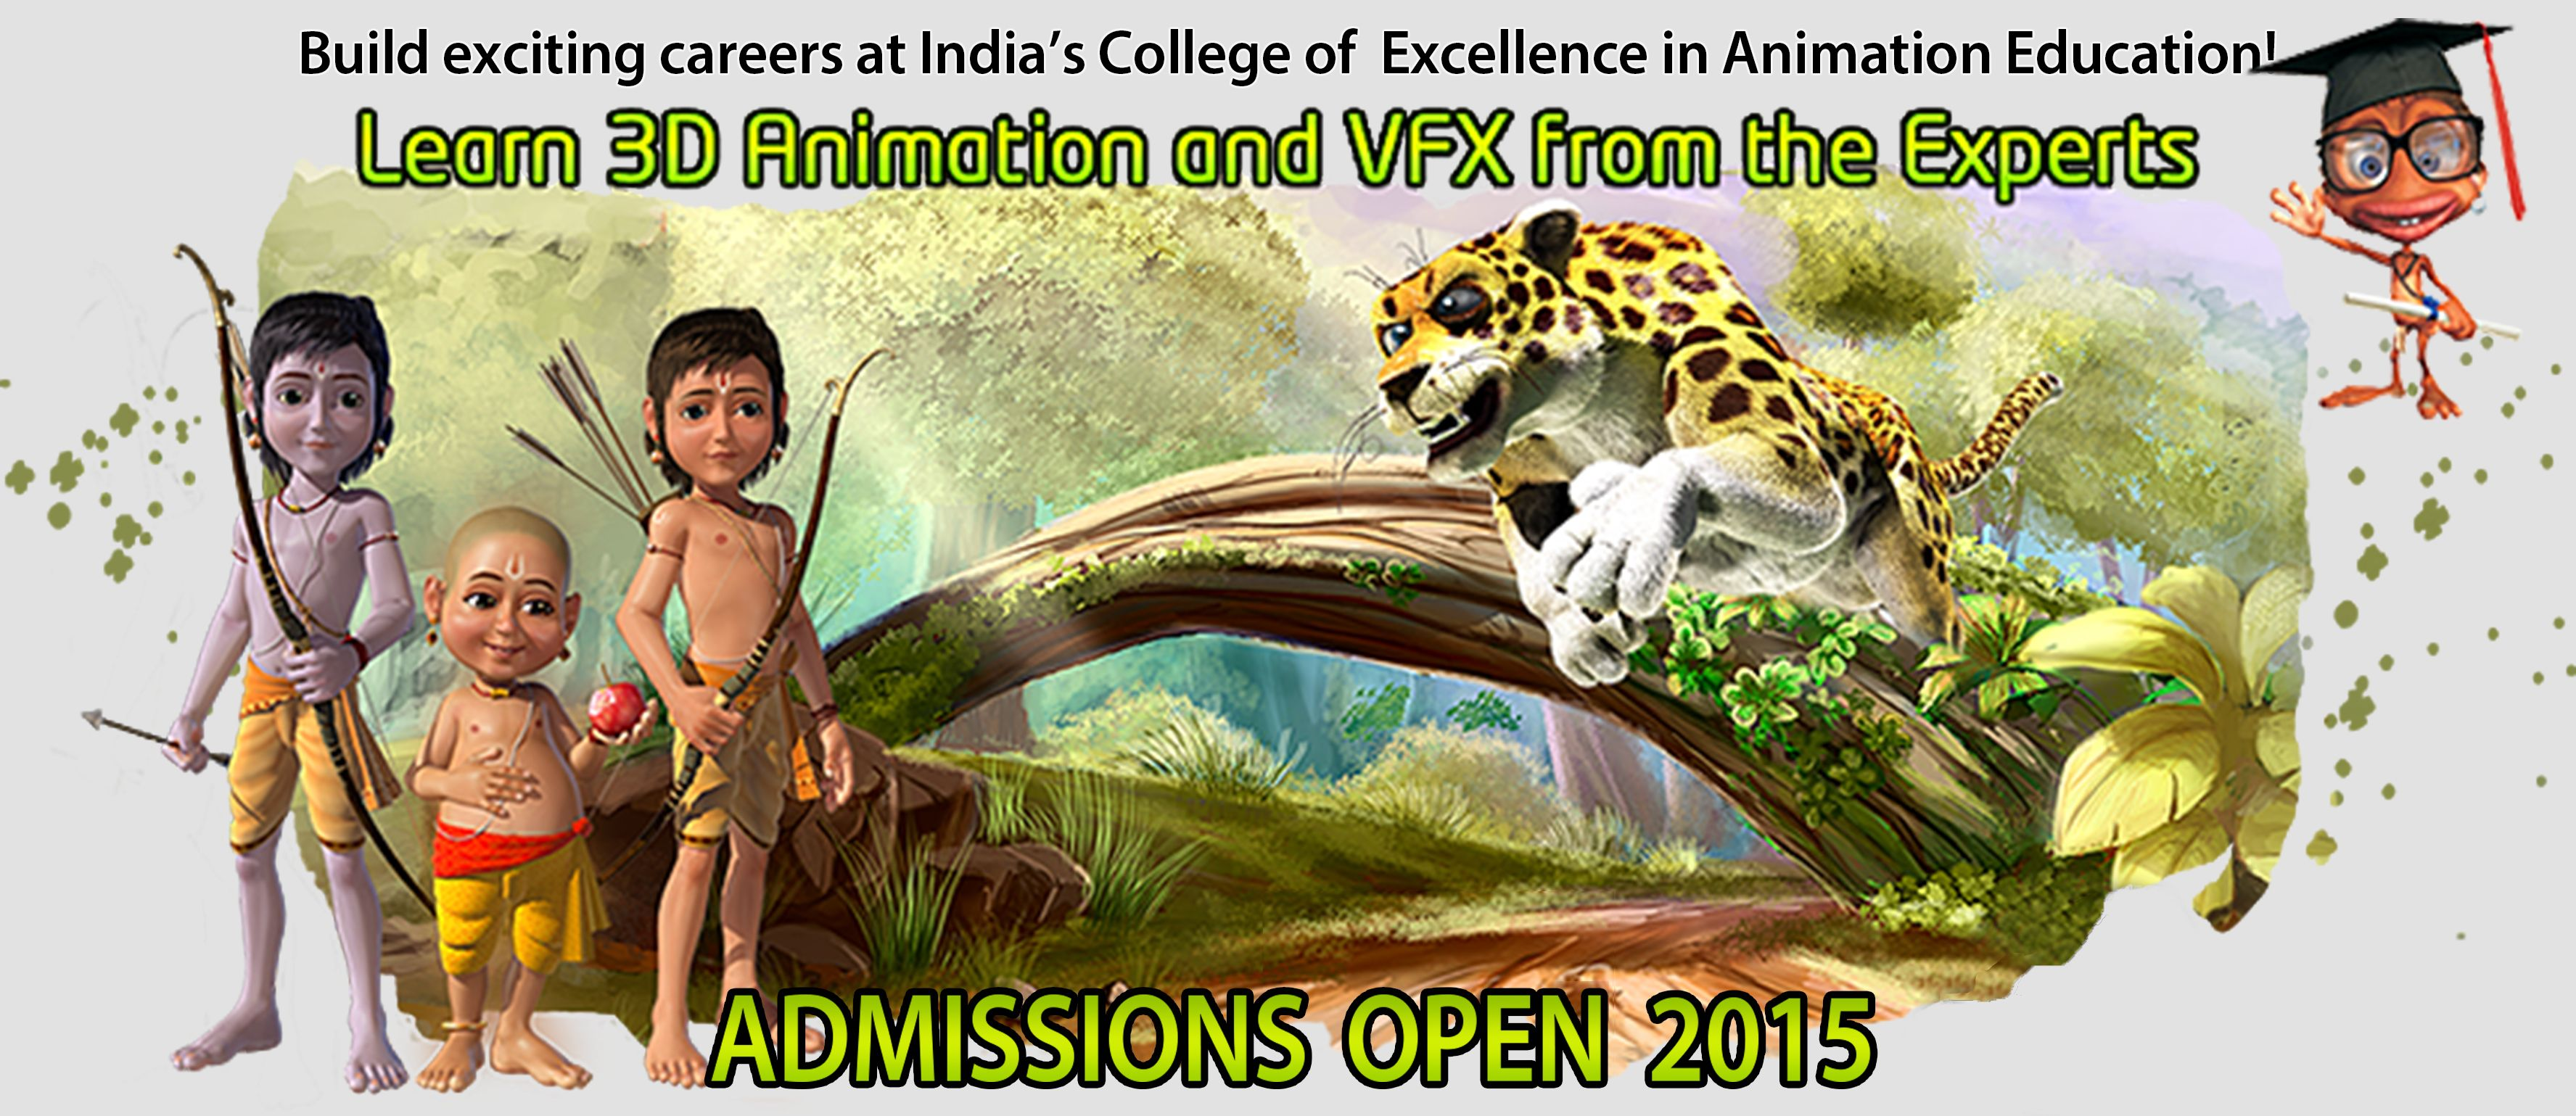 Best animation degree college animation colleges